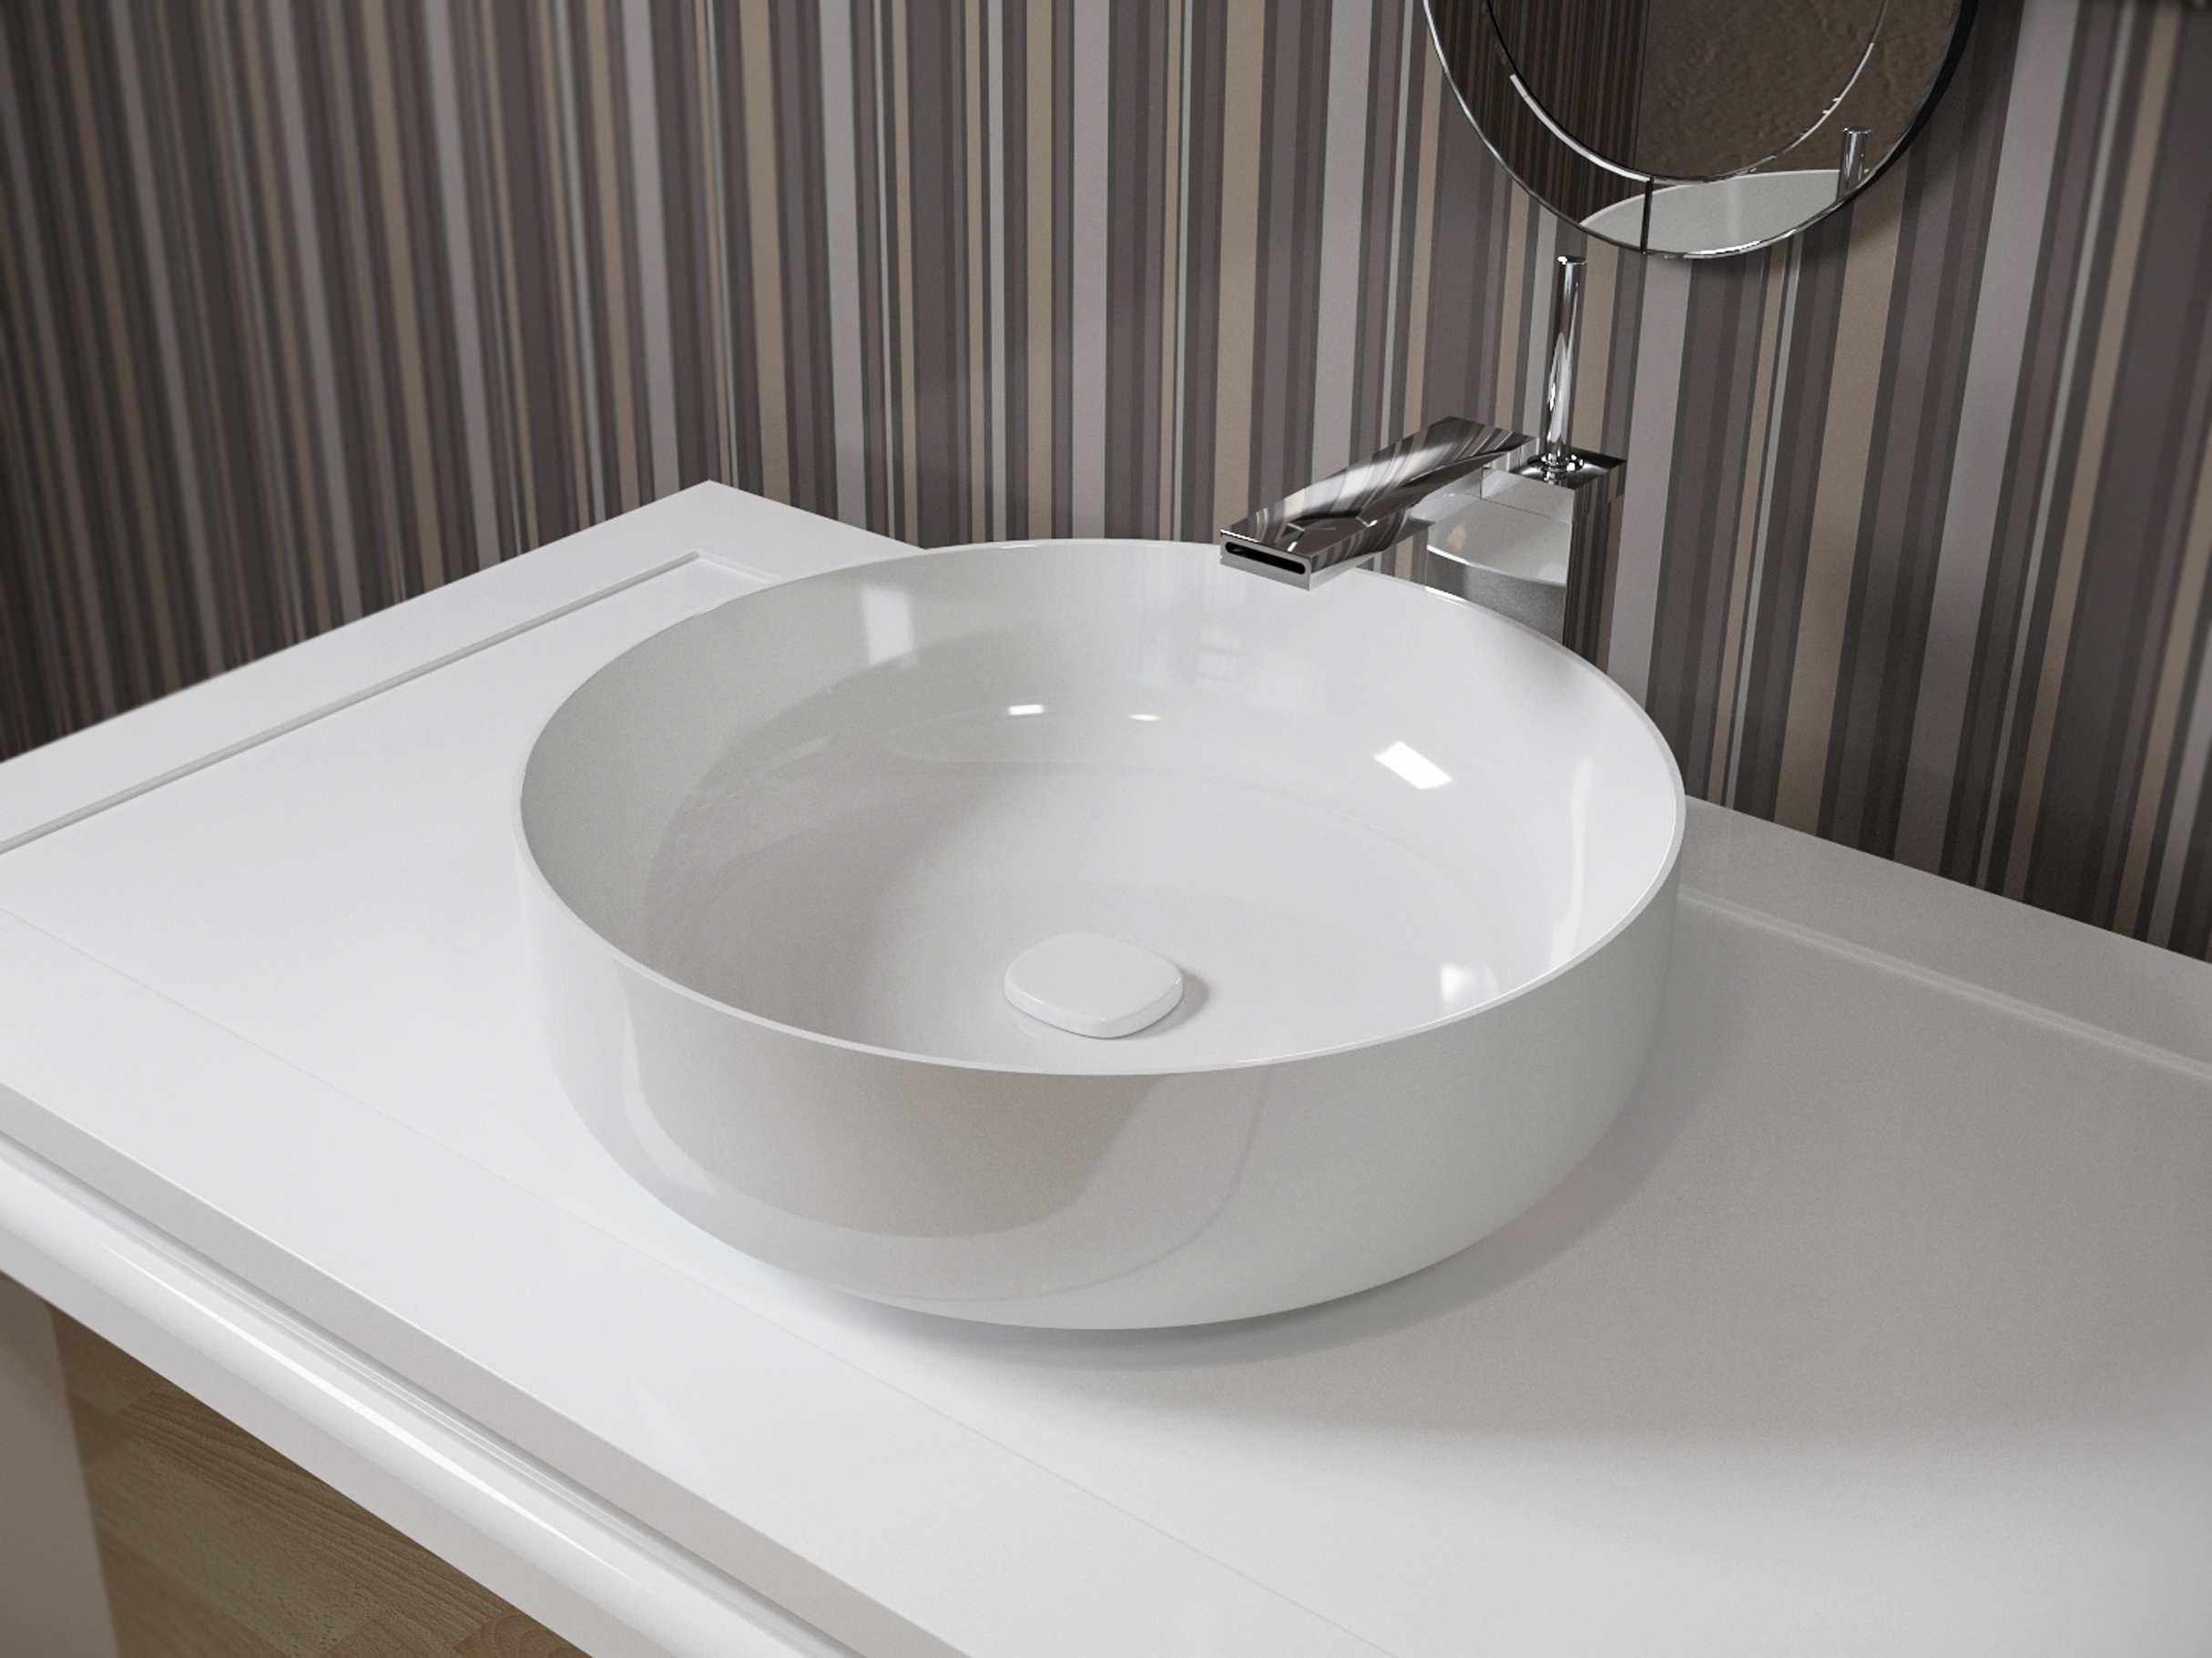 Metamorfosi-wht Round Ceramic Bathroom Vessel Sink